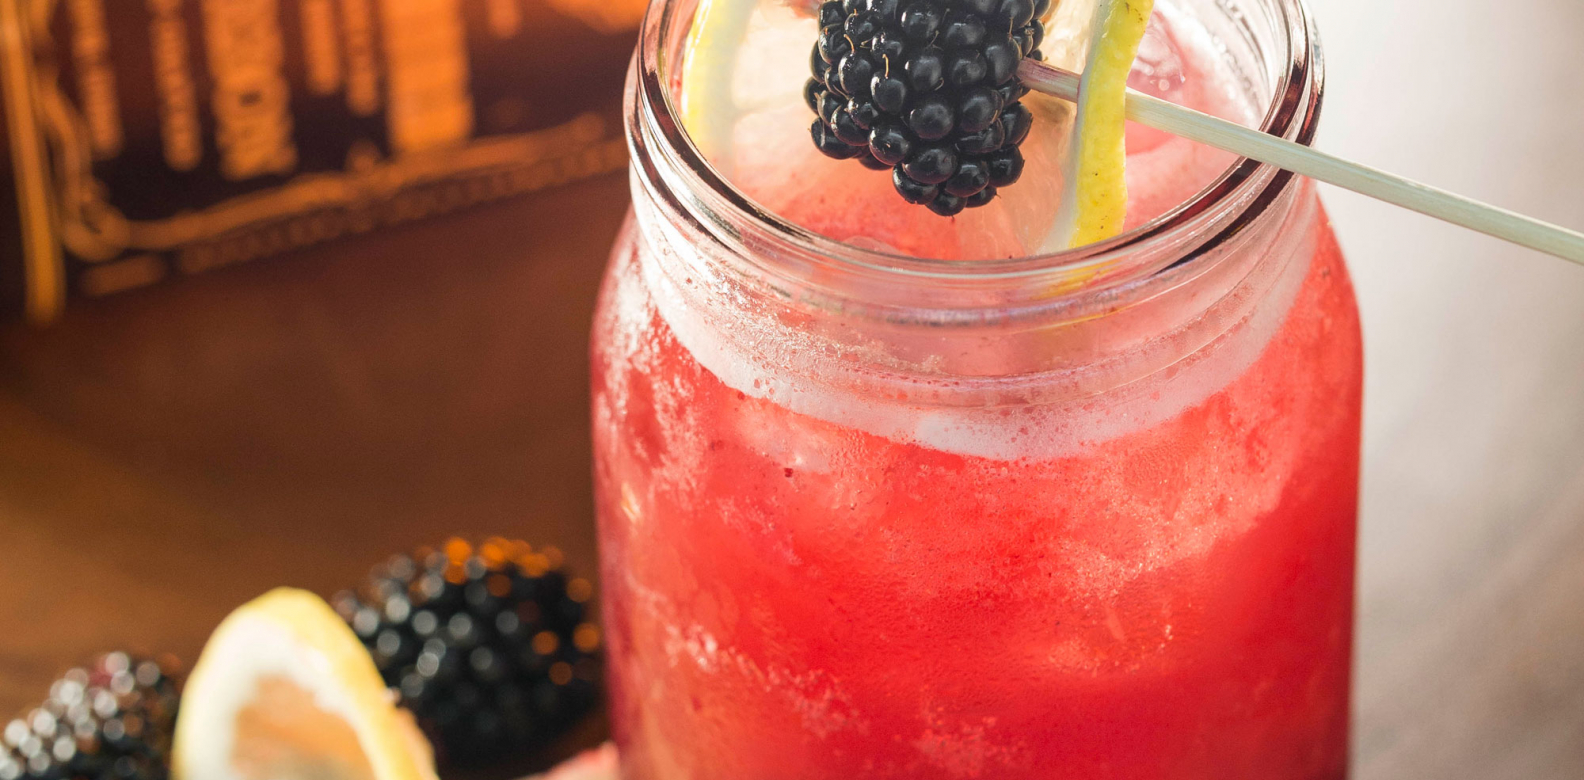 Blackberry Bourbon Lemonade at The Bird Southern Table & Bar